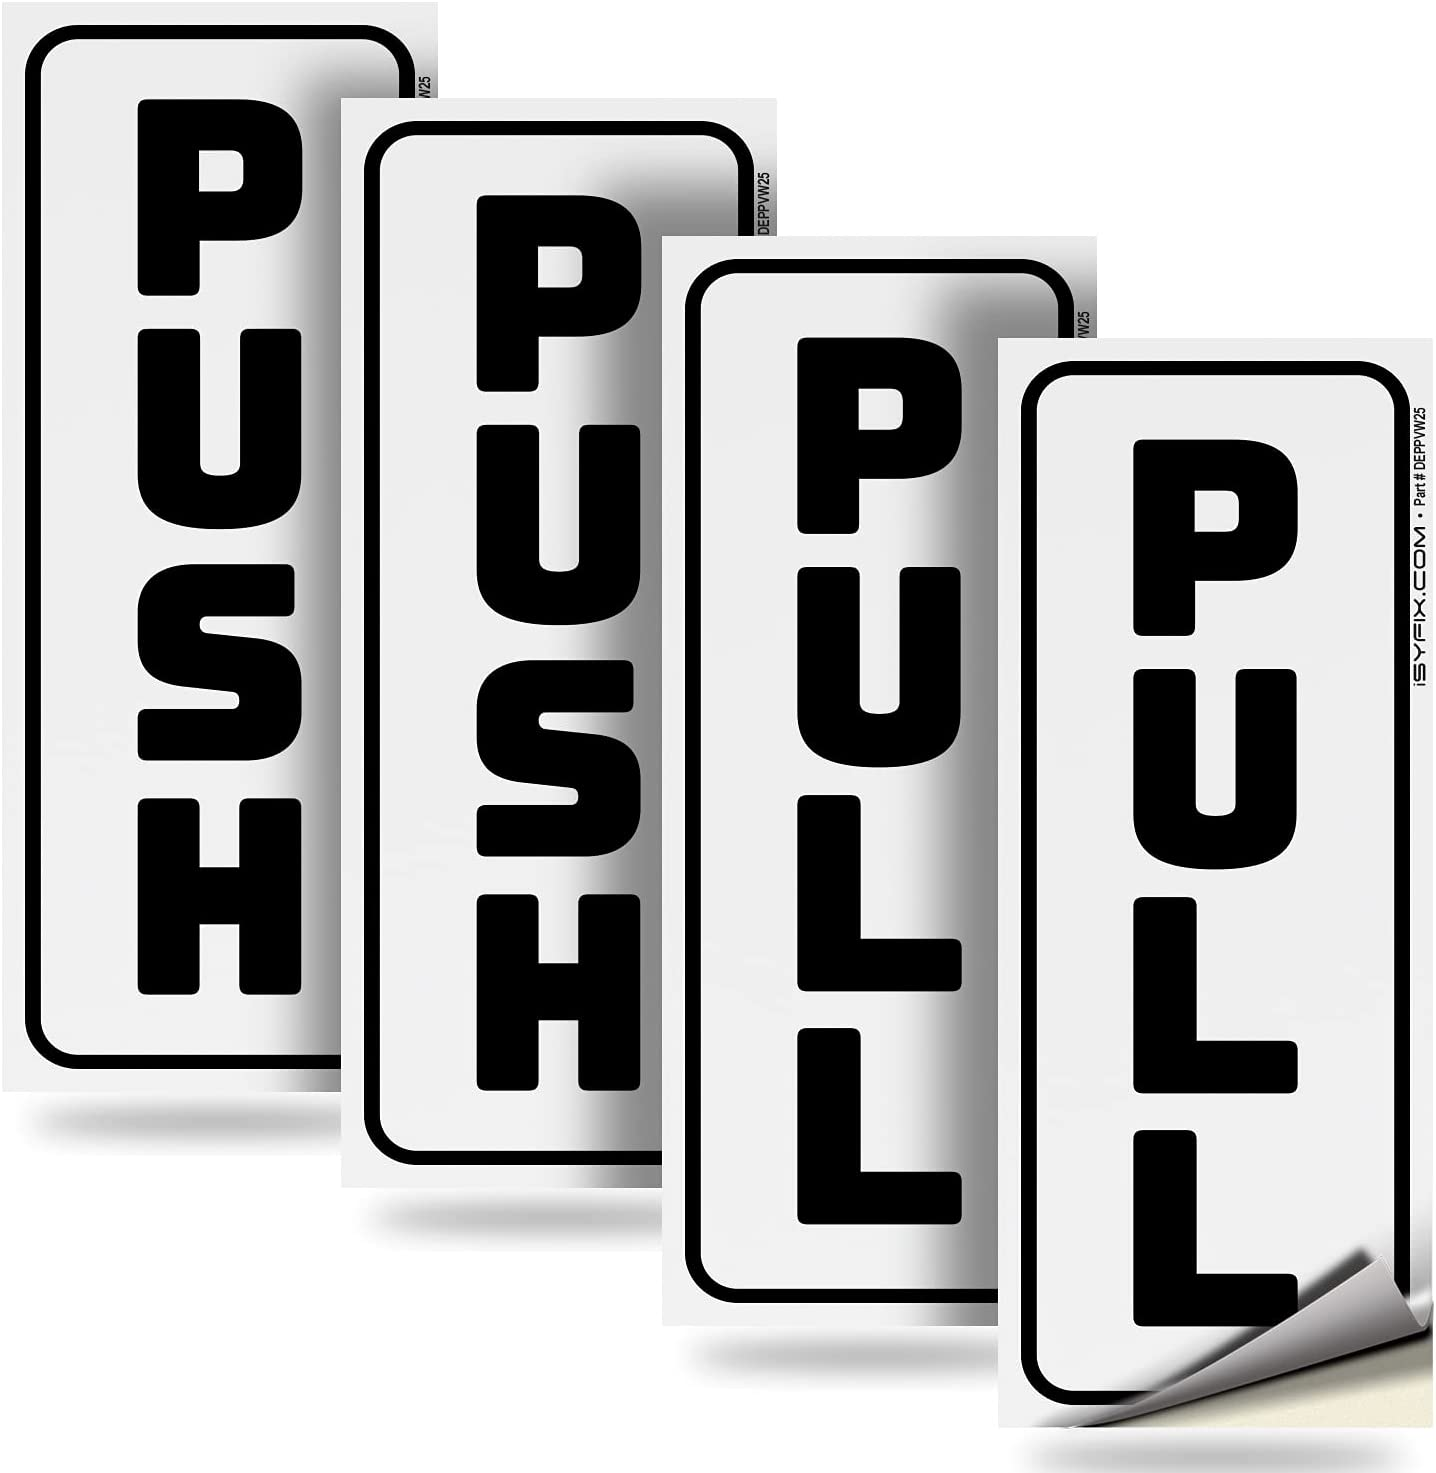 """Push Pull Door Vertical Stickers Sign – 2 pack 2""""x5"""" in, Back Self-Adhesive White & Black Vinyl Sticker for Business, Stores, Cafes, Shops & More. Indoor and Outdoor use. : Office Products"""